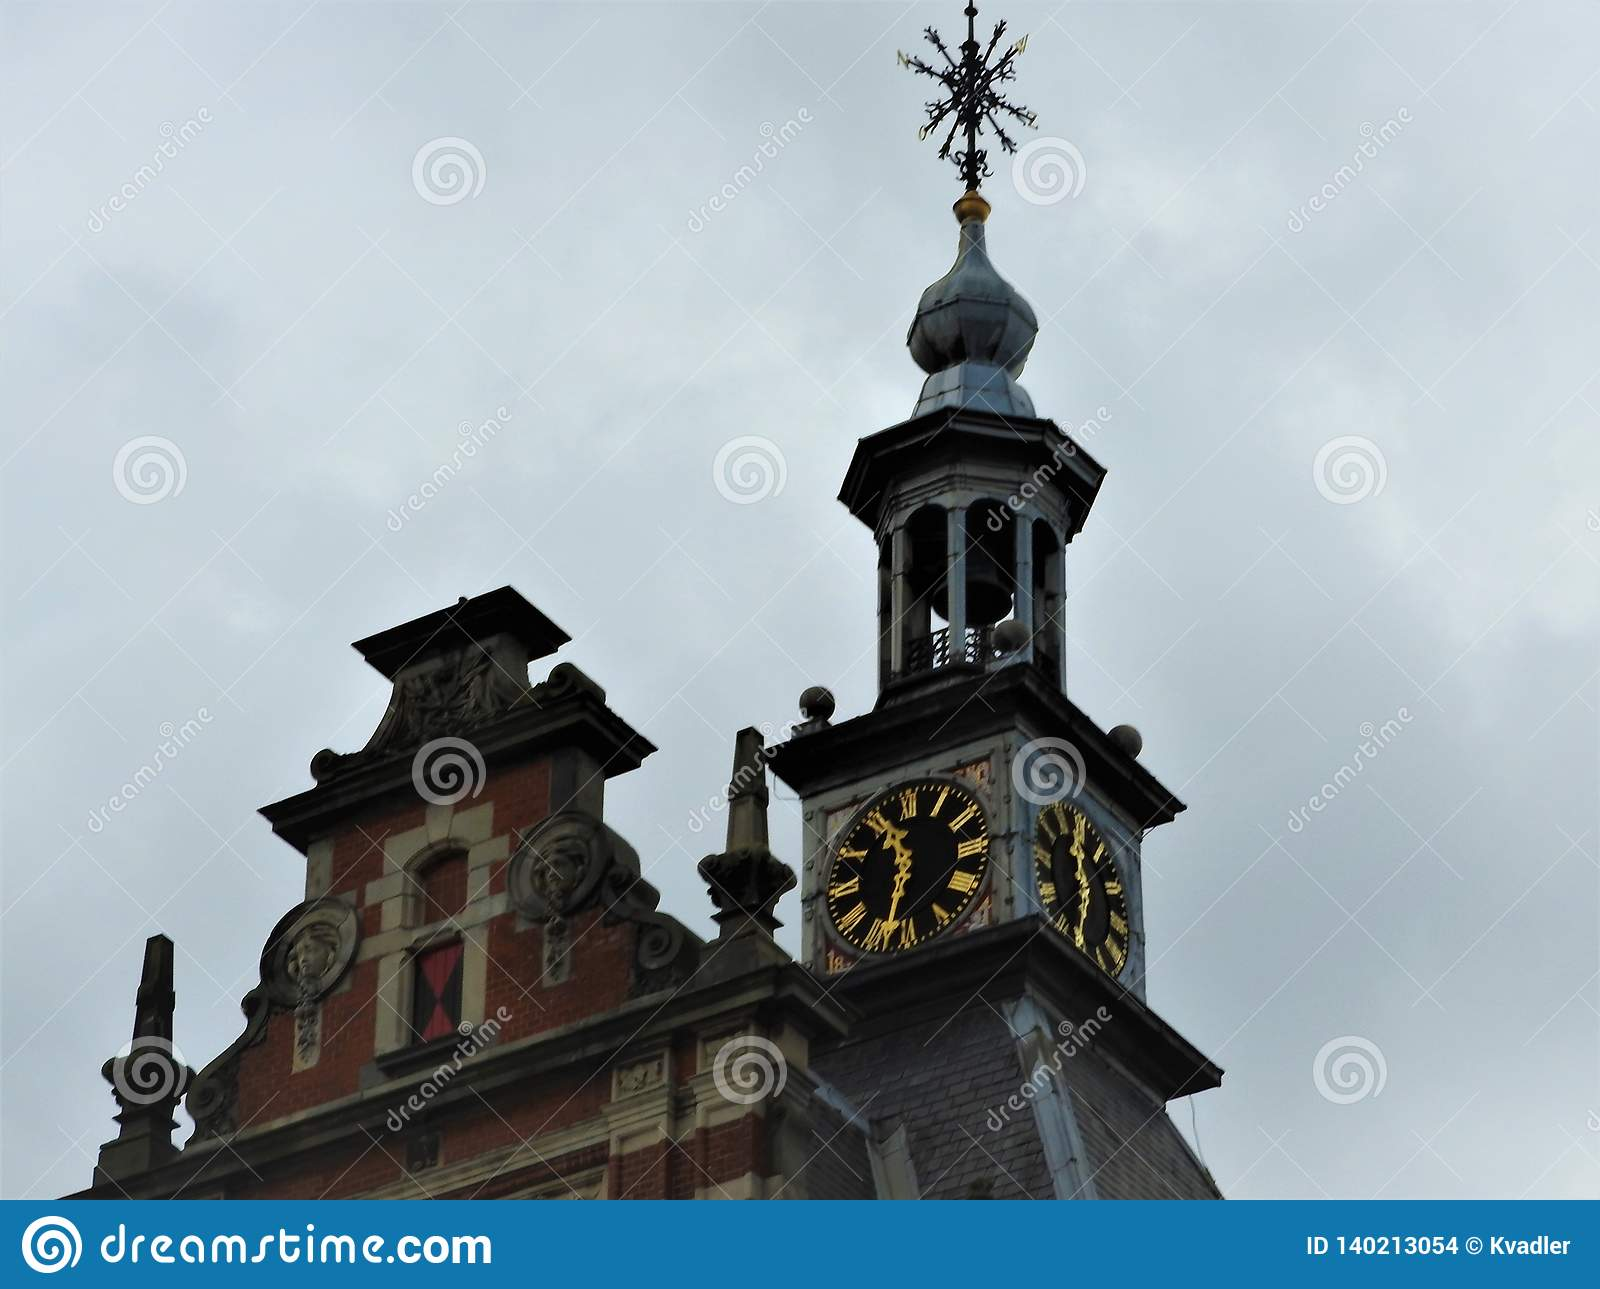 Exquisite architecture of Amsterdam, stone facades and design elements. Travelling to Europe